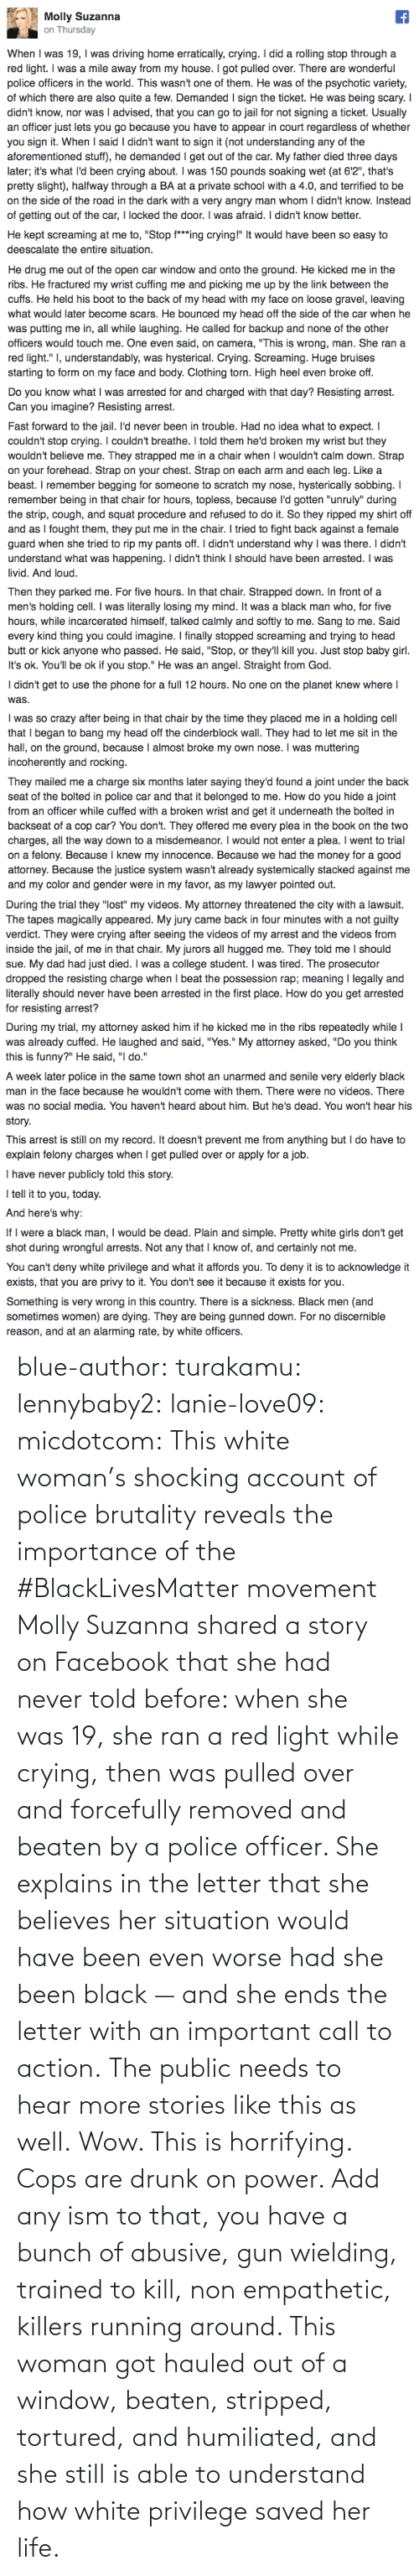 Crying: blue-author: turakamu:  lennybaby2:  lanie-love09:  micdotcom:  This white woman's shocking account of police brutality reveals the importance of the #BlackLivesMatter movement Molly Suzanna shared a story on Facebook that she had never told before: when she was 19, she ran a red light while crying, then was pulled over and forcefully removed and beaten by a police officer. She explains in the letter that she believes her situation would have been even worse had she been black — and she ends the letter with an important call to action.  The public needs to hear more stories like this as well.  Wow. This is horrifying.  Cops are drunk on power. Add any ism to that, you have a bunch of abusive, gun wielding, trained to kill, non empathetic, killers running around.    This woman got hauled out of a window, beaten, stripped, tortured, and humiliated, and she still is able to understand how white privilege saved her life.